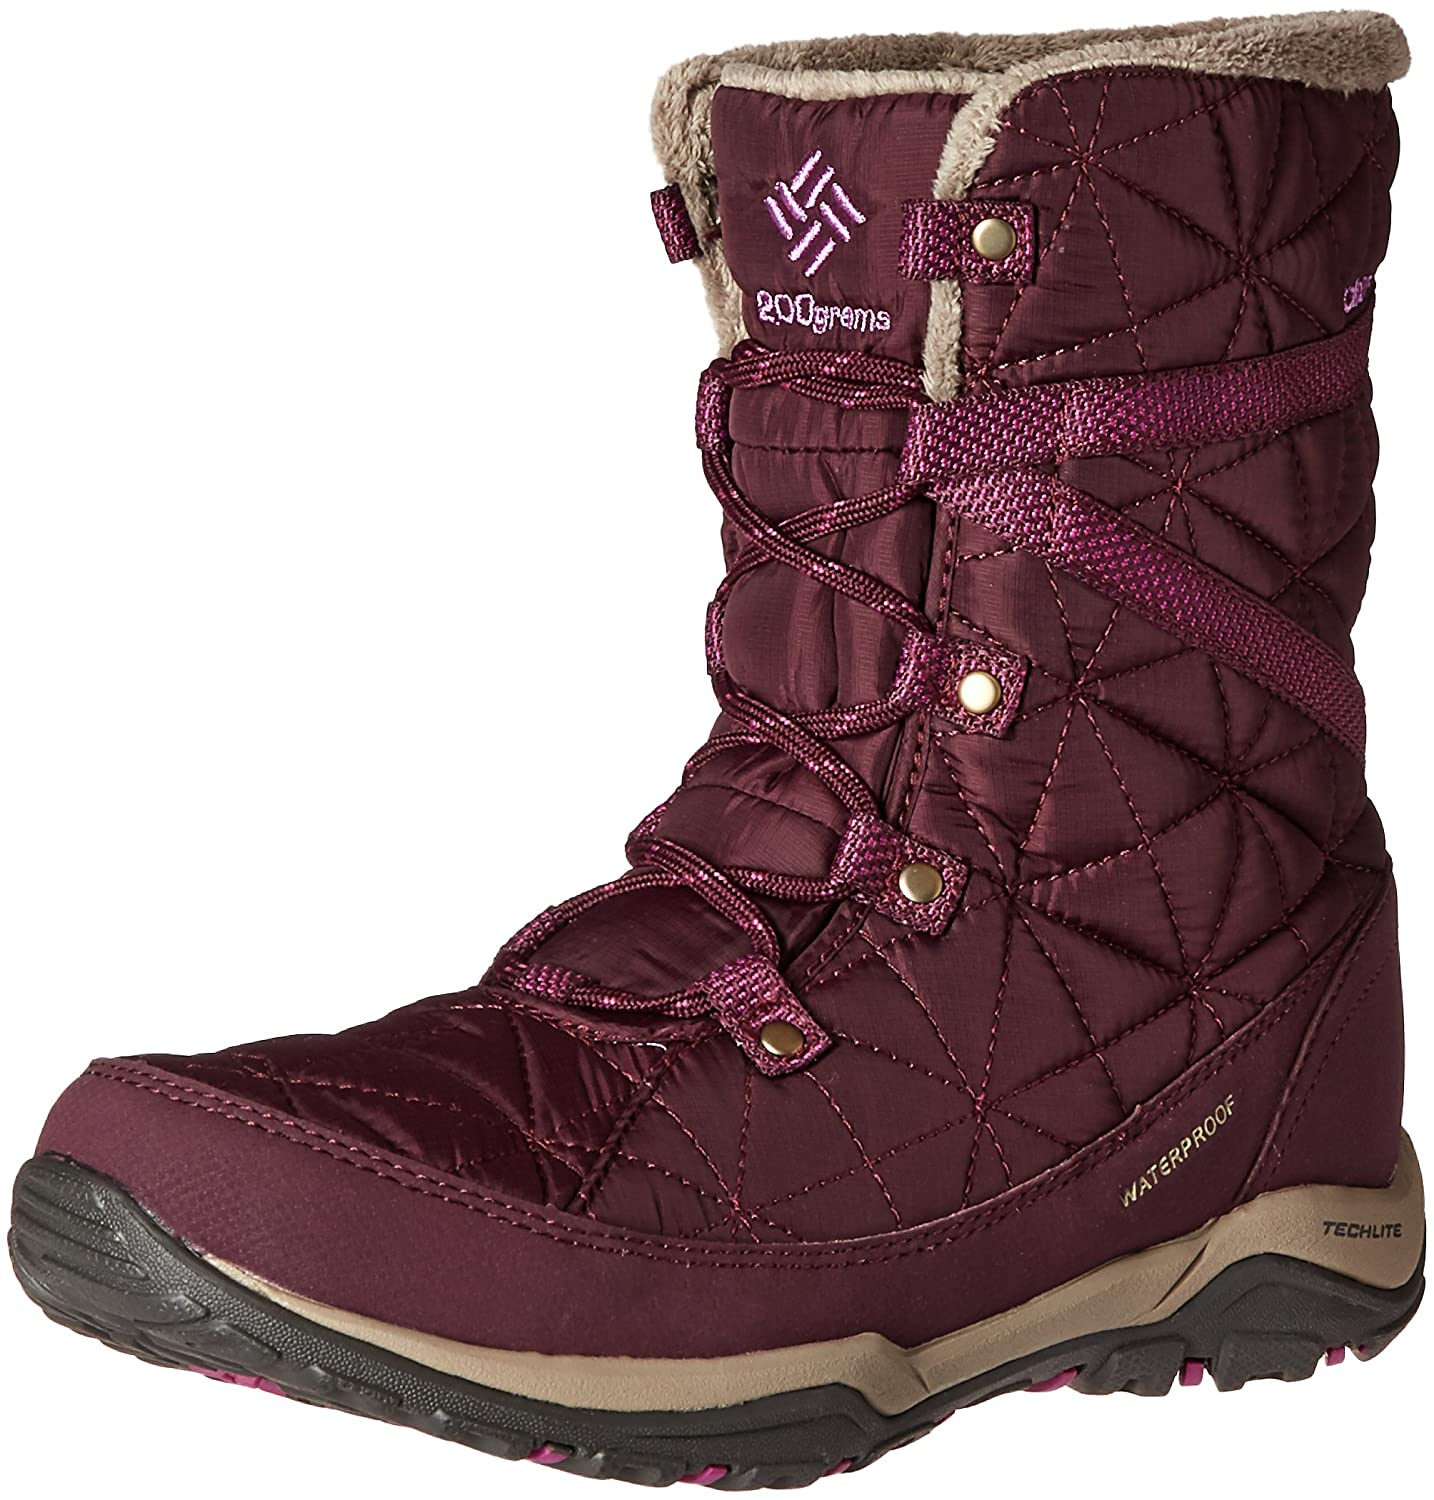 Columbia Women's Loveland Mid Omni-Heat Snow Boot B0183NVCES 6.5 B(M) US|Purple Dahlia/Northern Lights